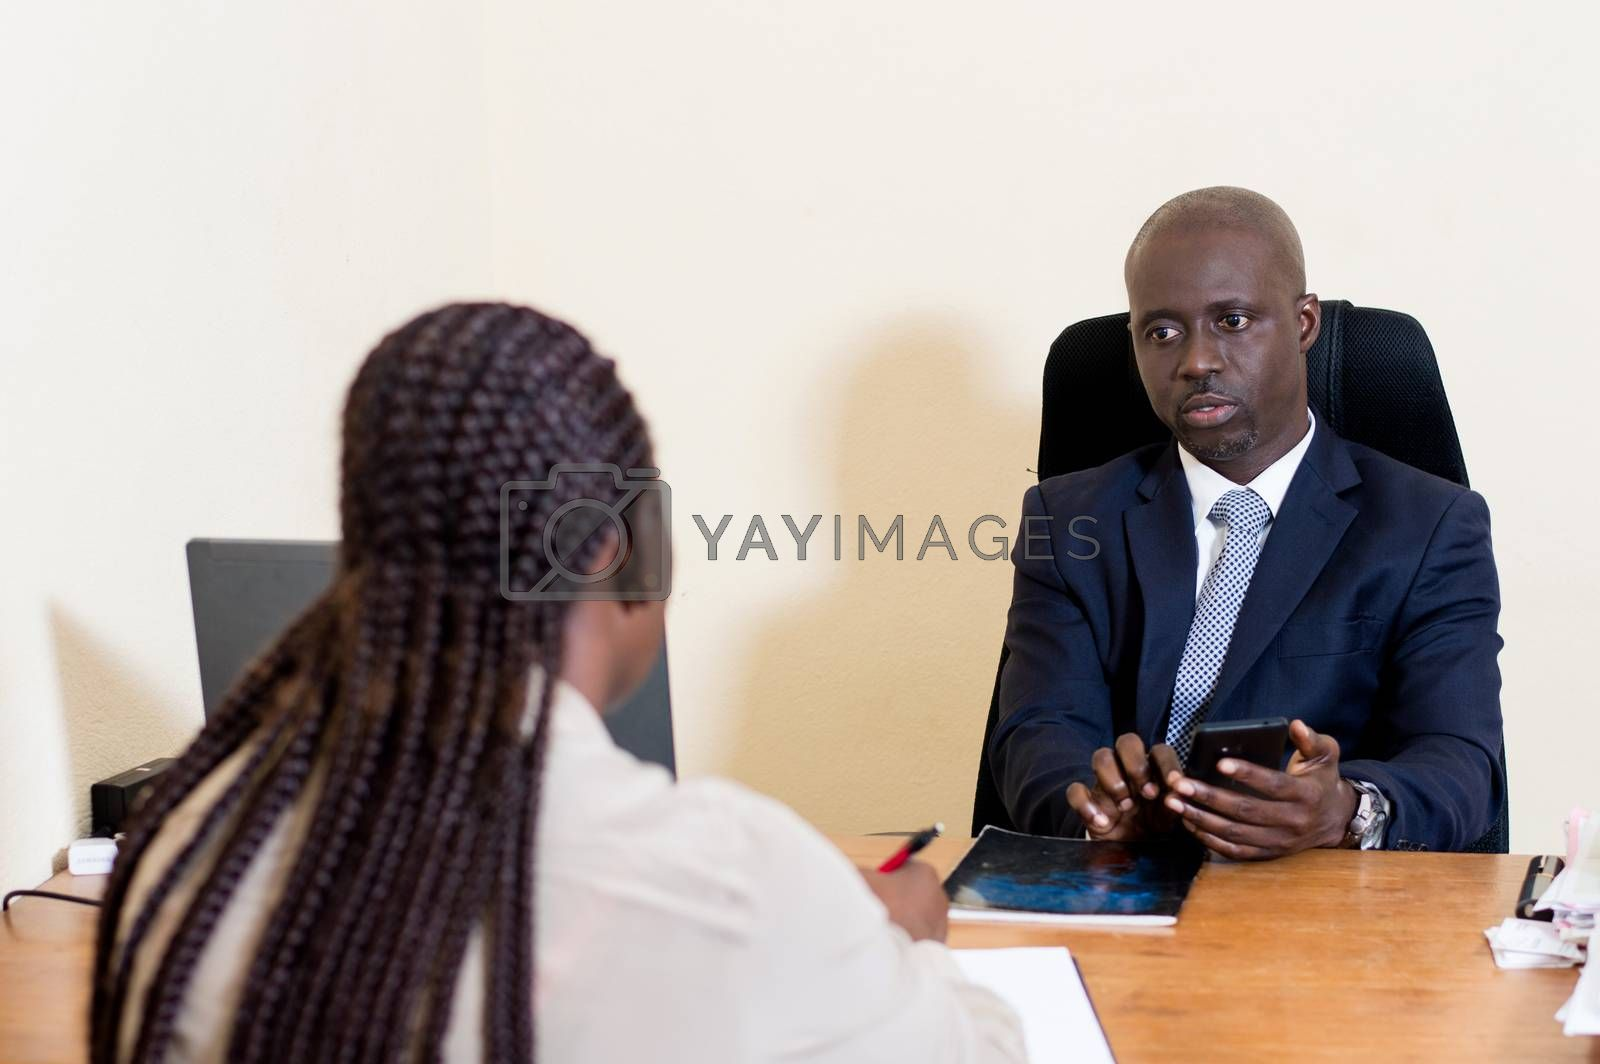 Business people meet in the office to discuss and exchange working methods.